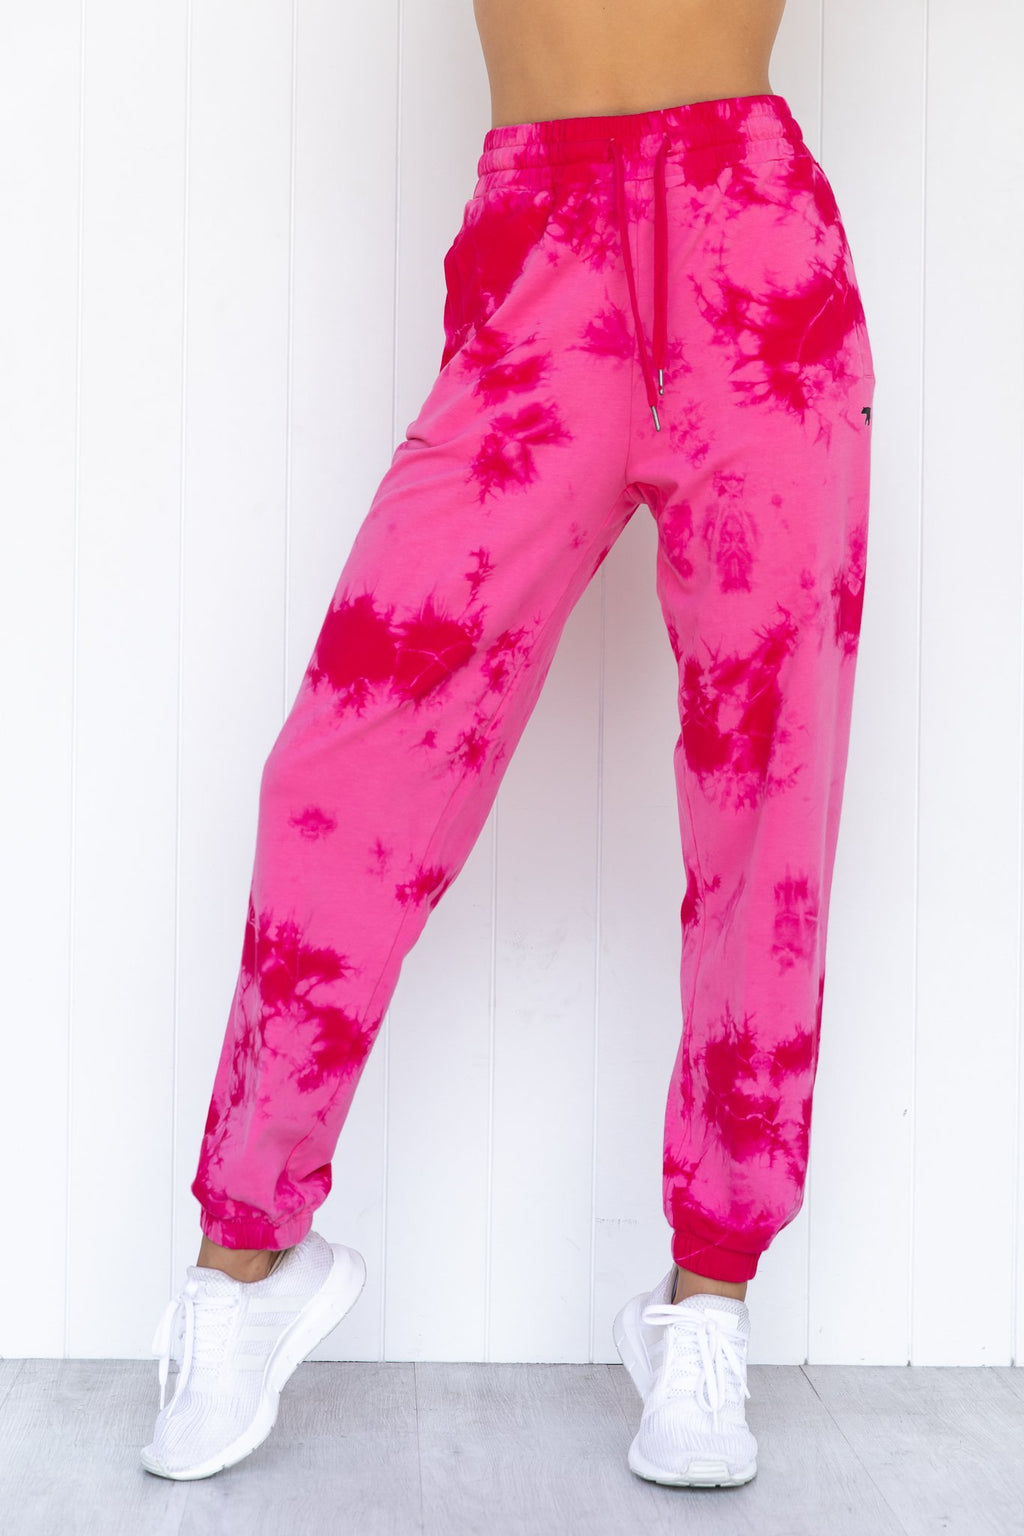 Lounging Sweatpants - Rosa Crumple Tie Dye